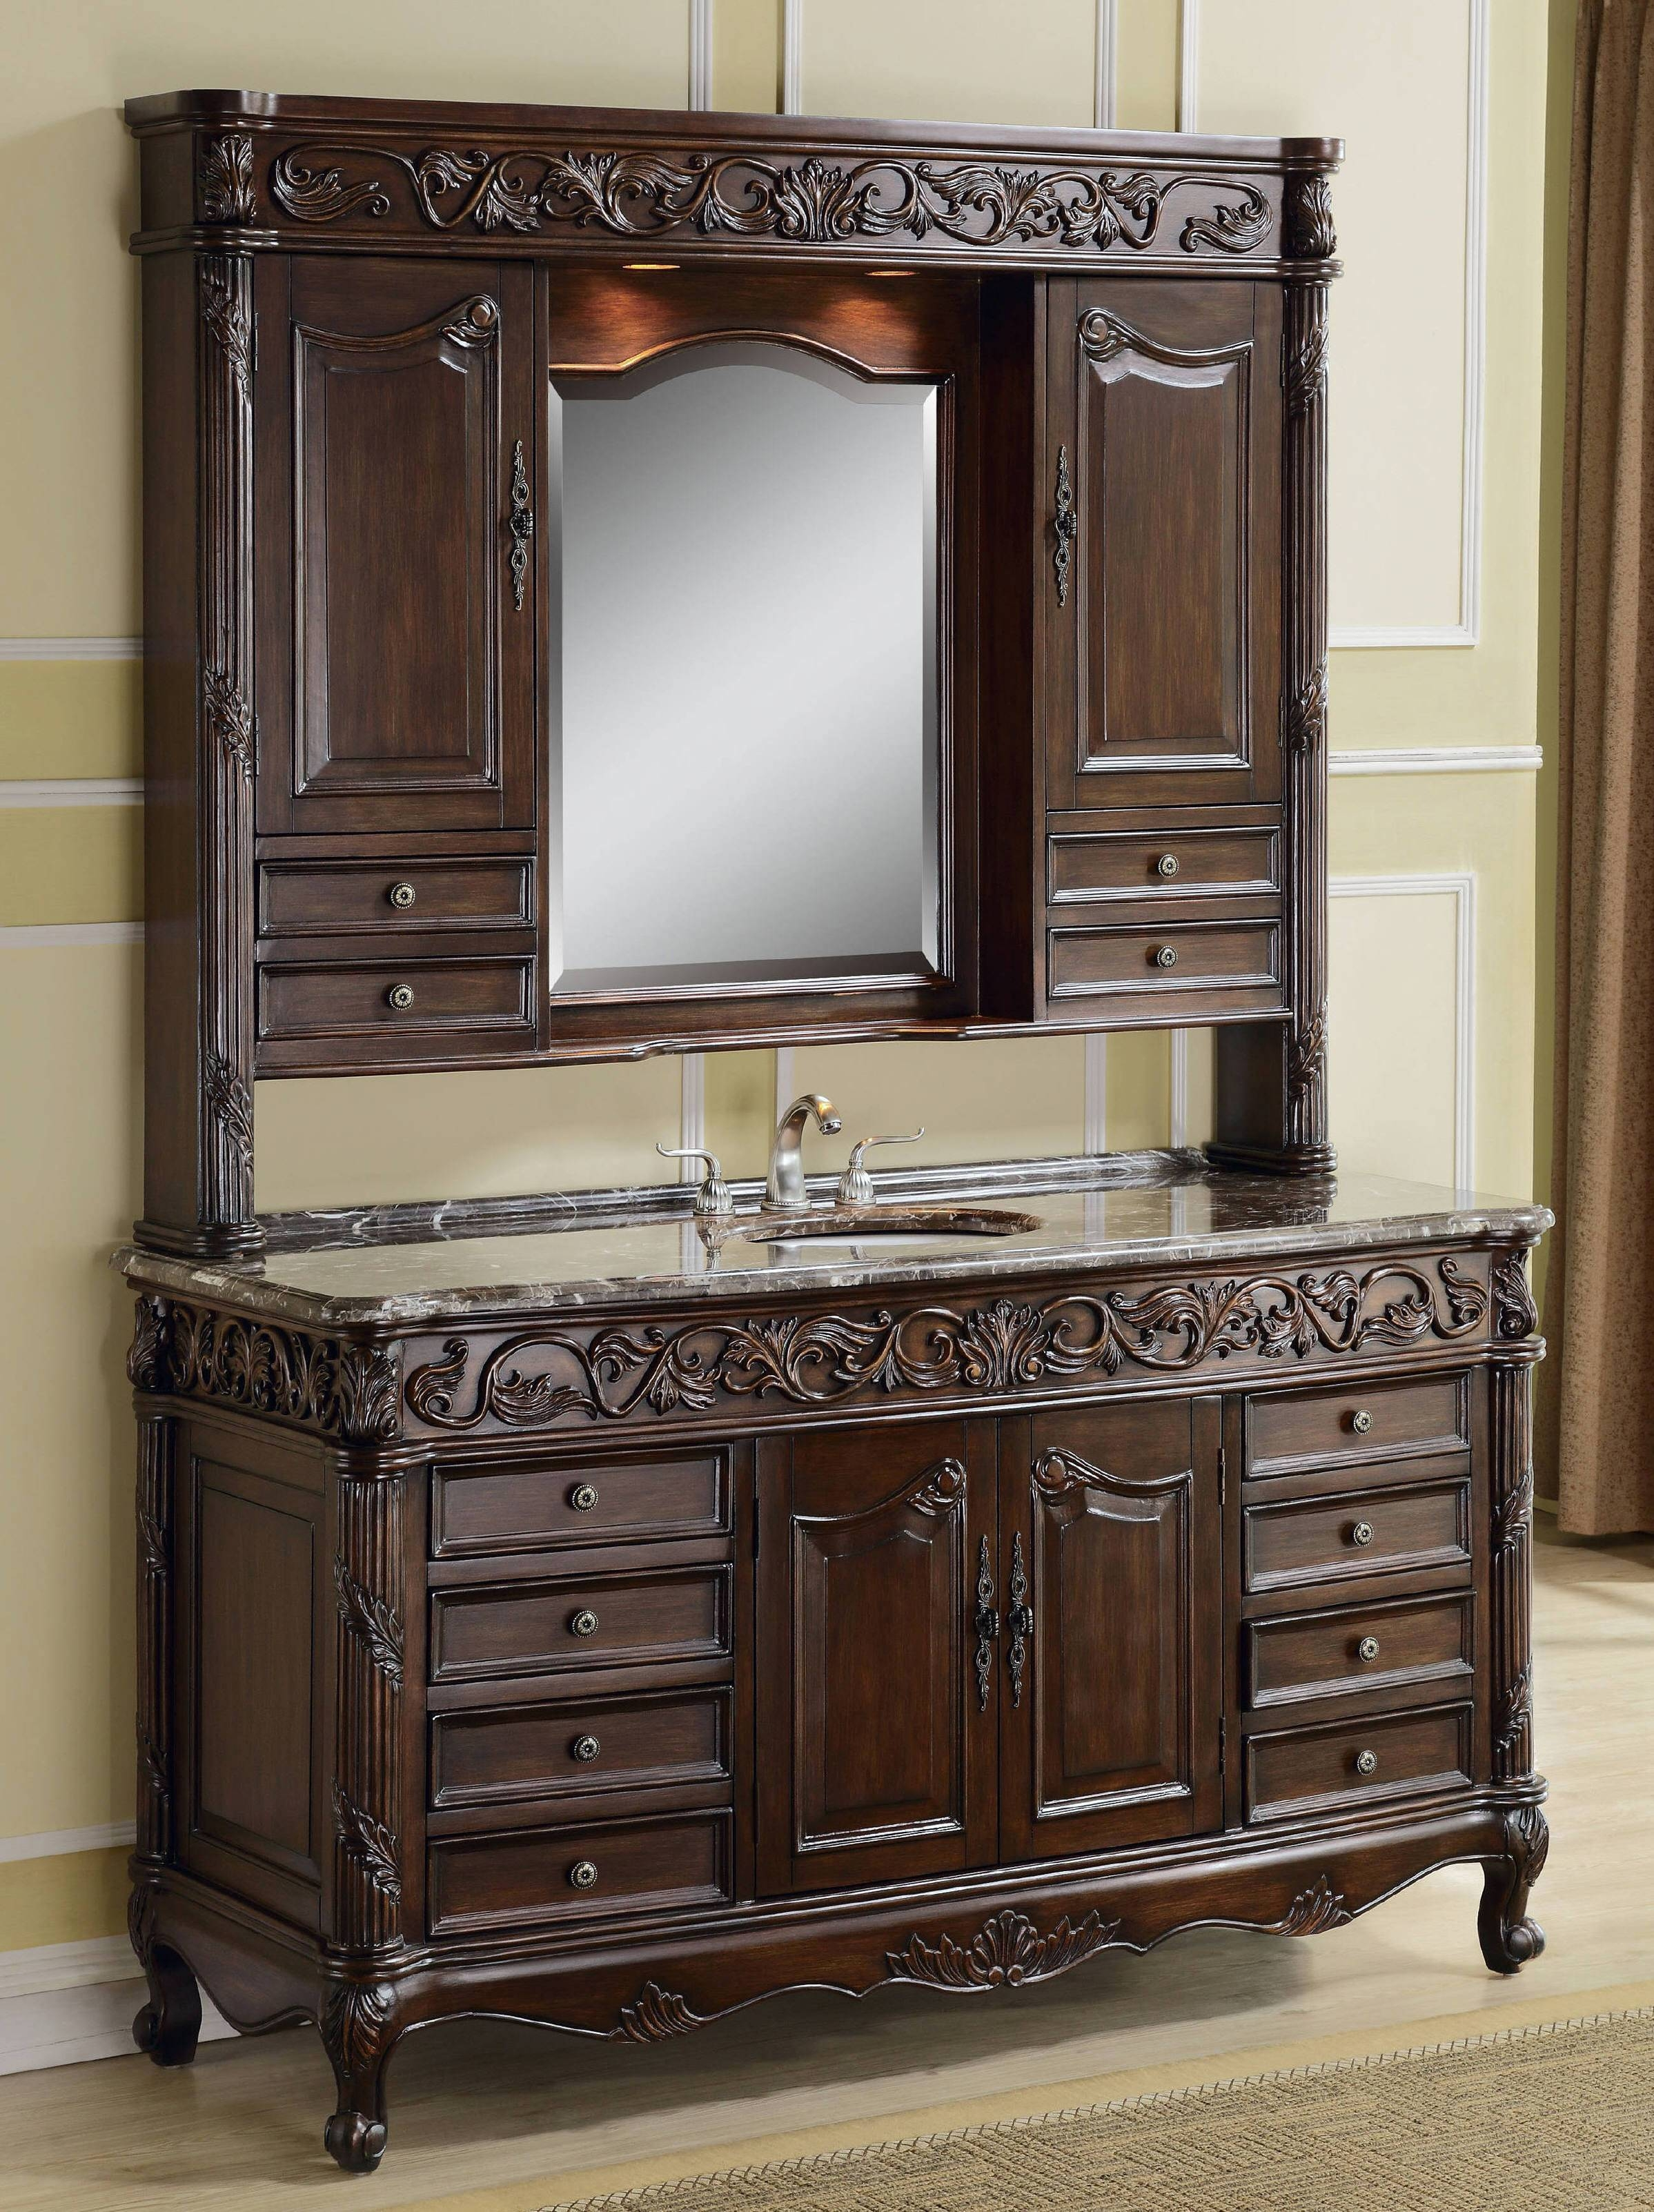 vanity sink and furniture kitchen bathroom bowl with bath cabinets sinks your single inc menards fill mirrors for mirrored products pretty plumbing search cozy vanities ideas